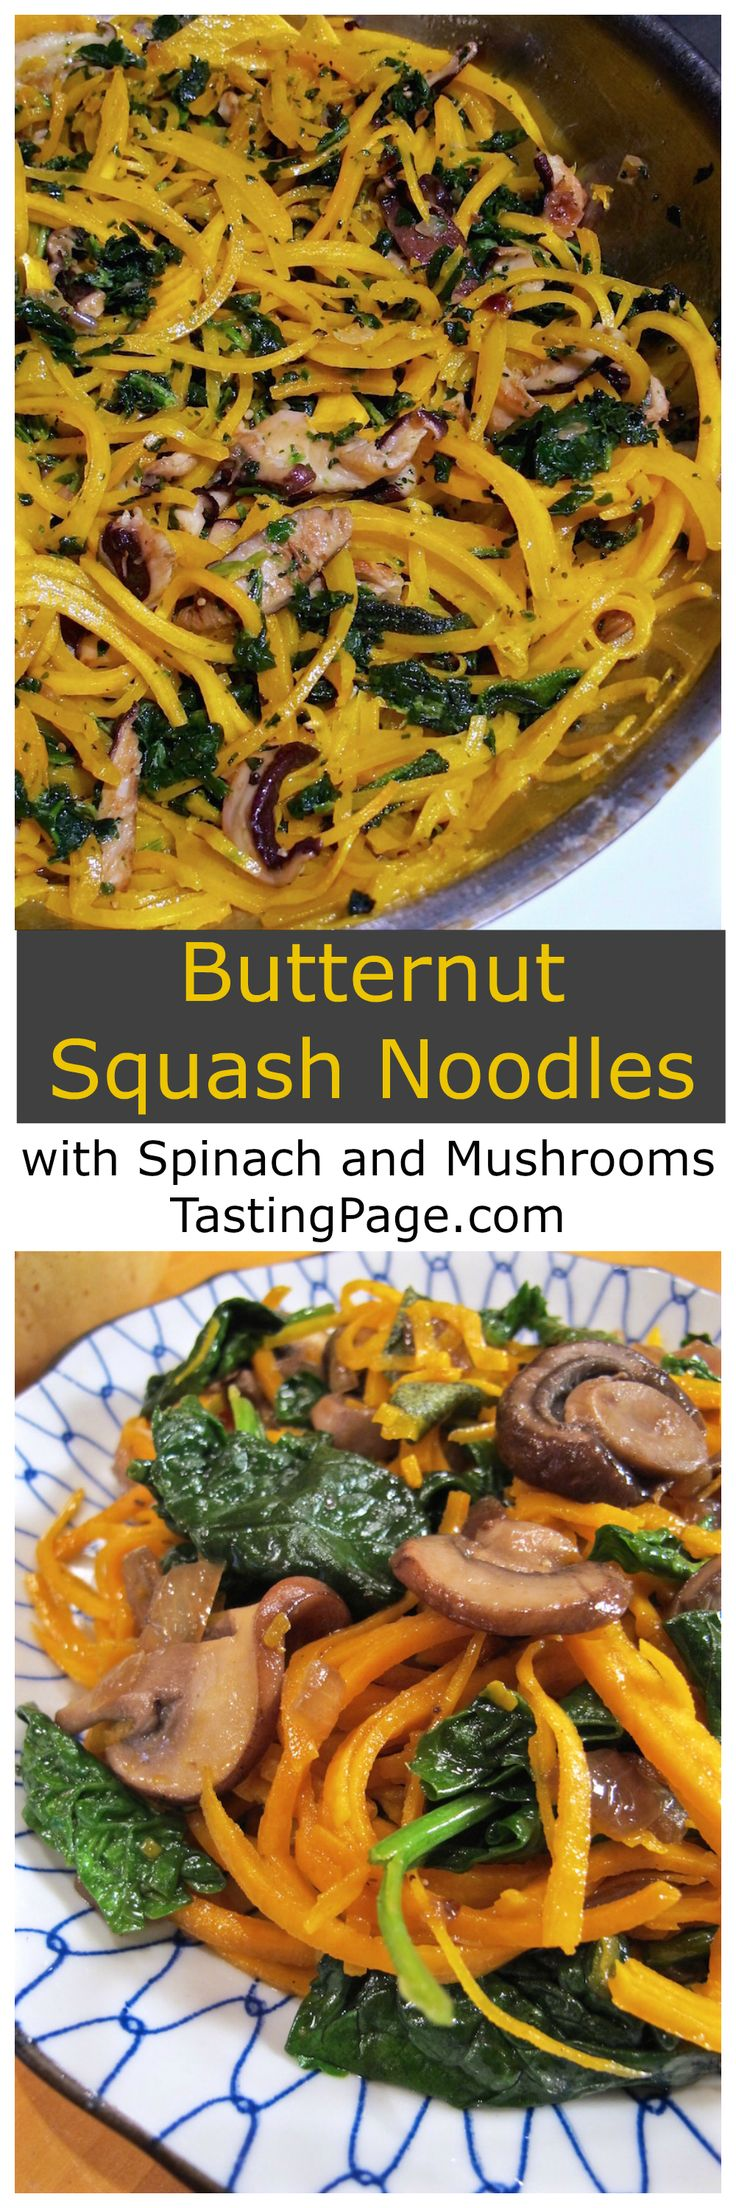 Gluten Free Butternut Squash Noodles with Spinach and Mushrooms | TastingPage.com